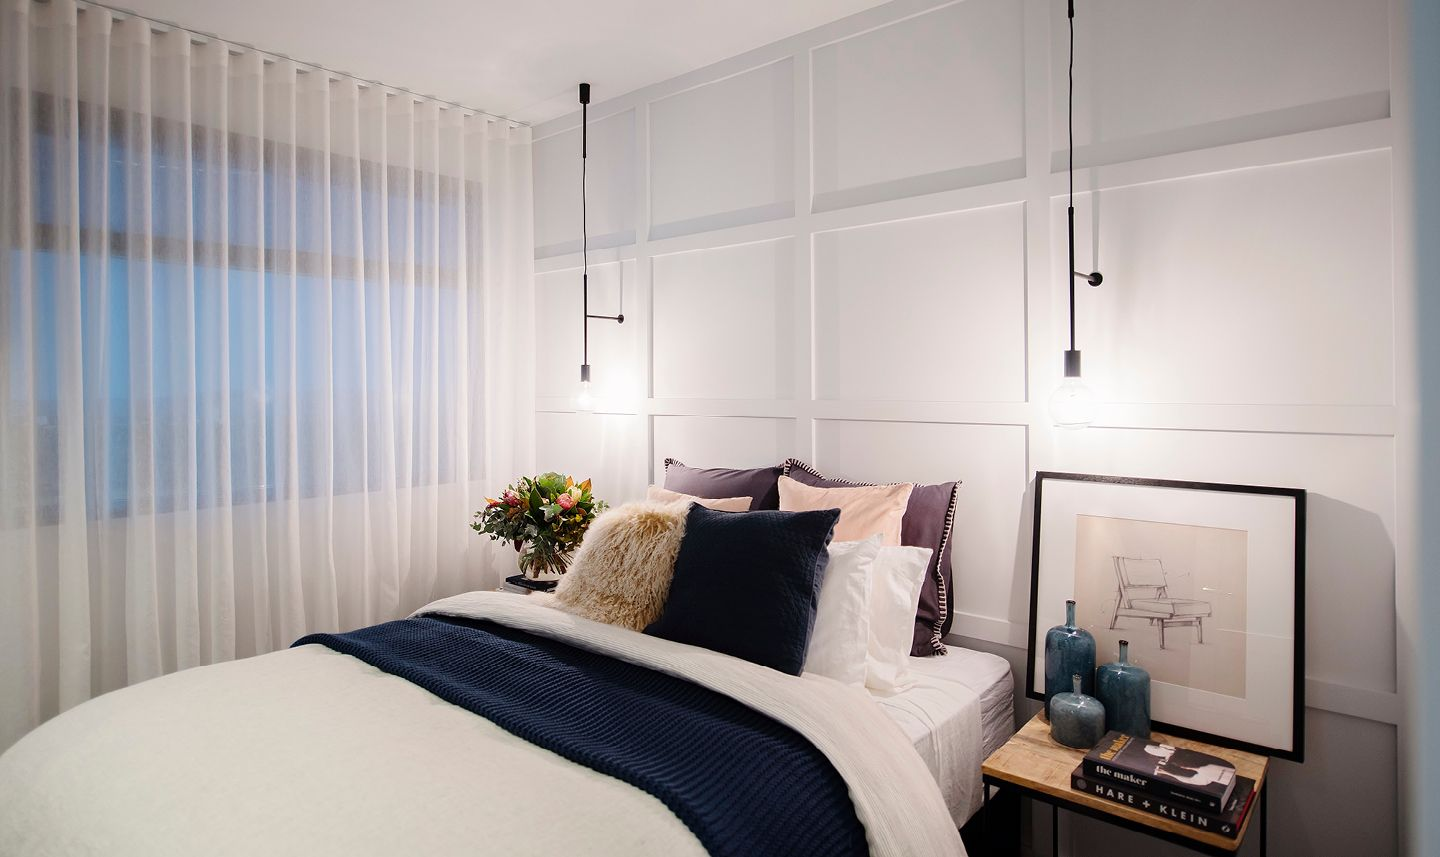 Sheer Curtain Ideas Sheer Curtains Bedroom Sheer Curtains Trendy Bedroom